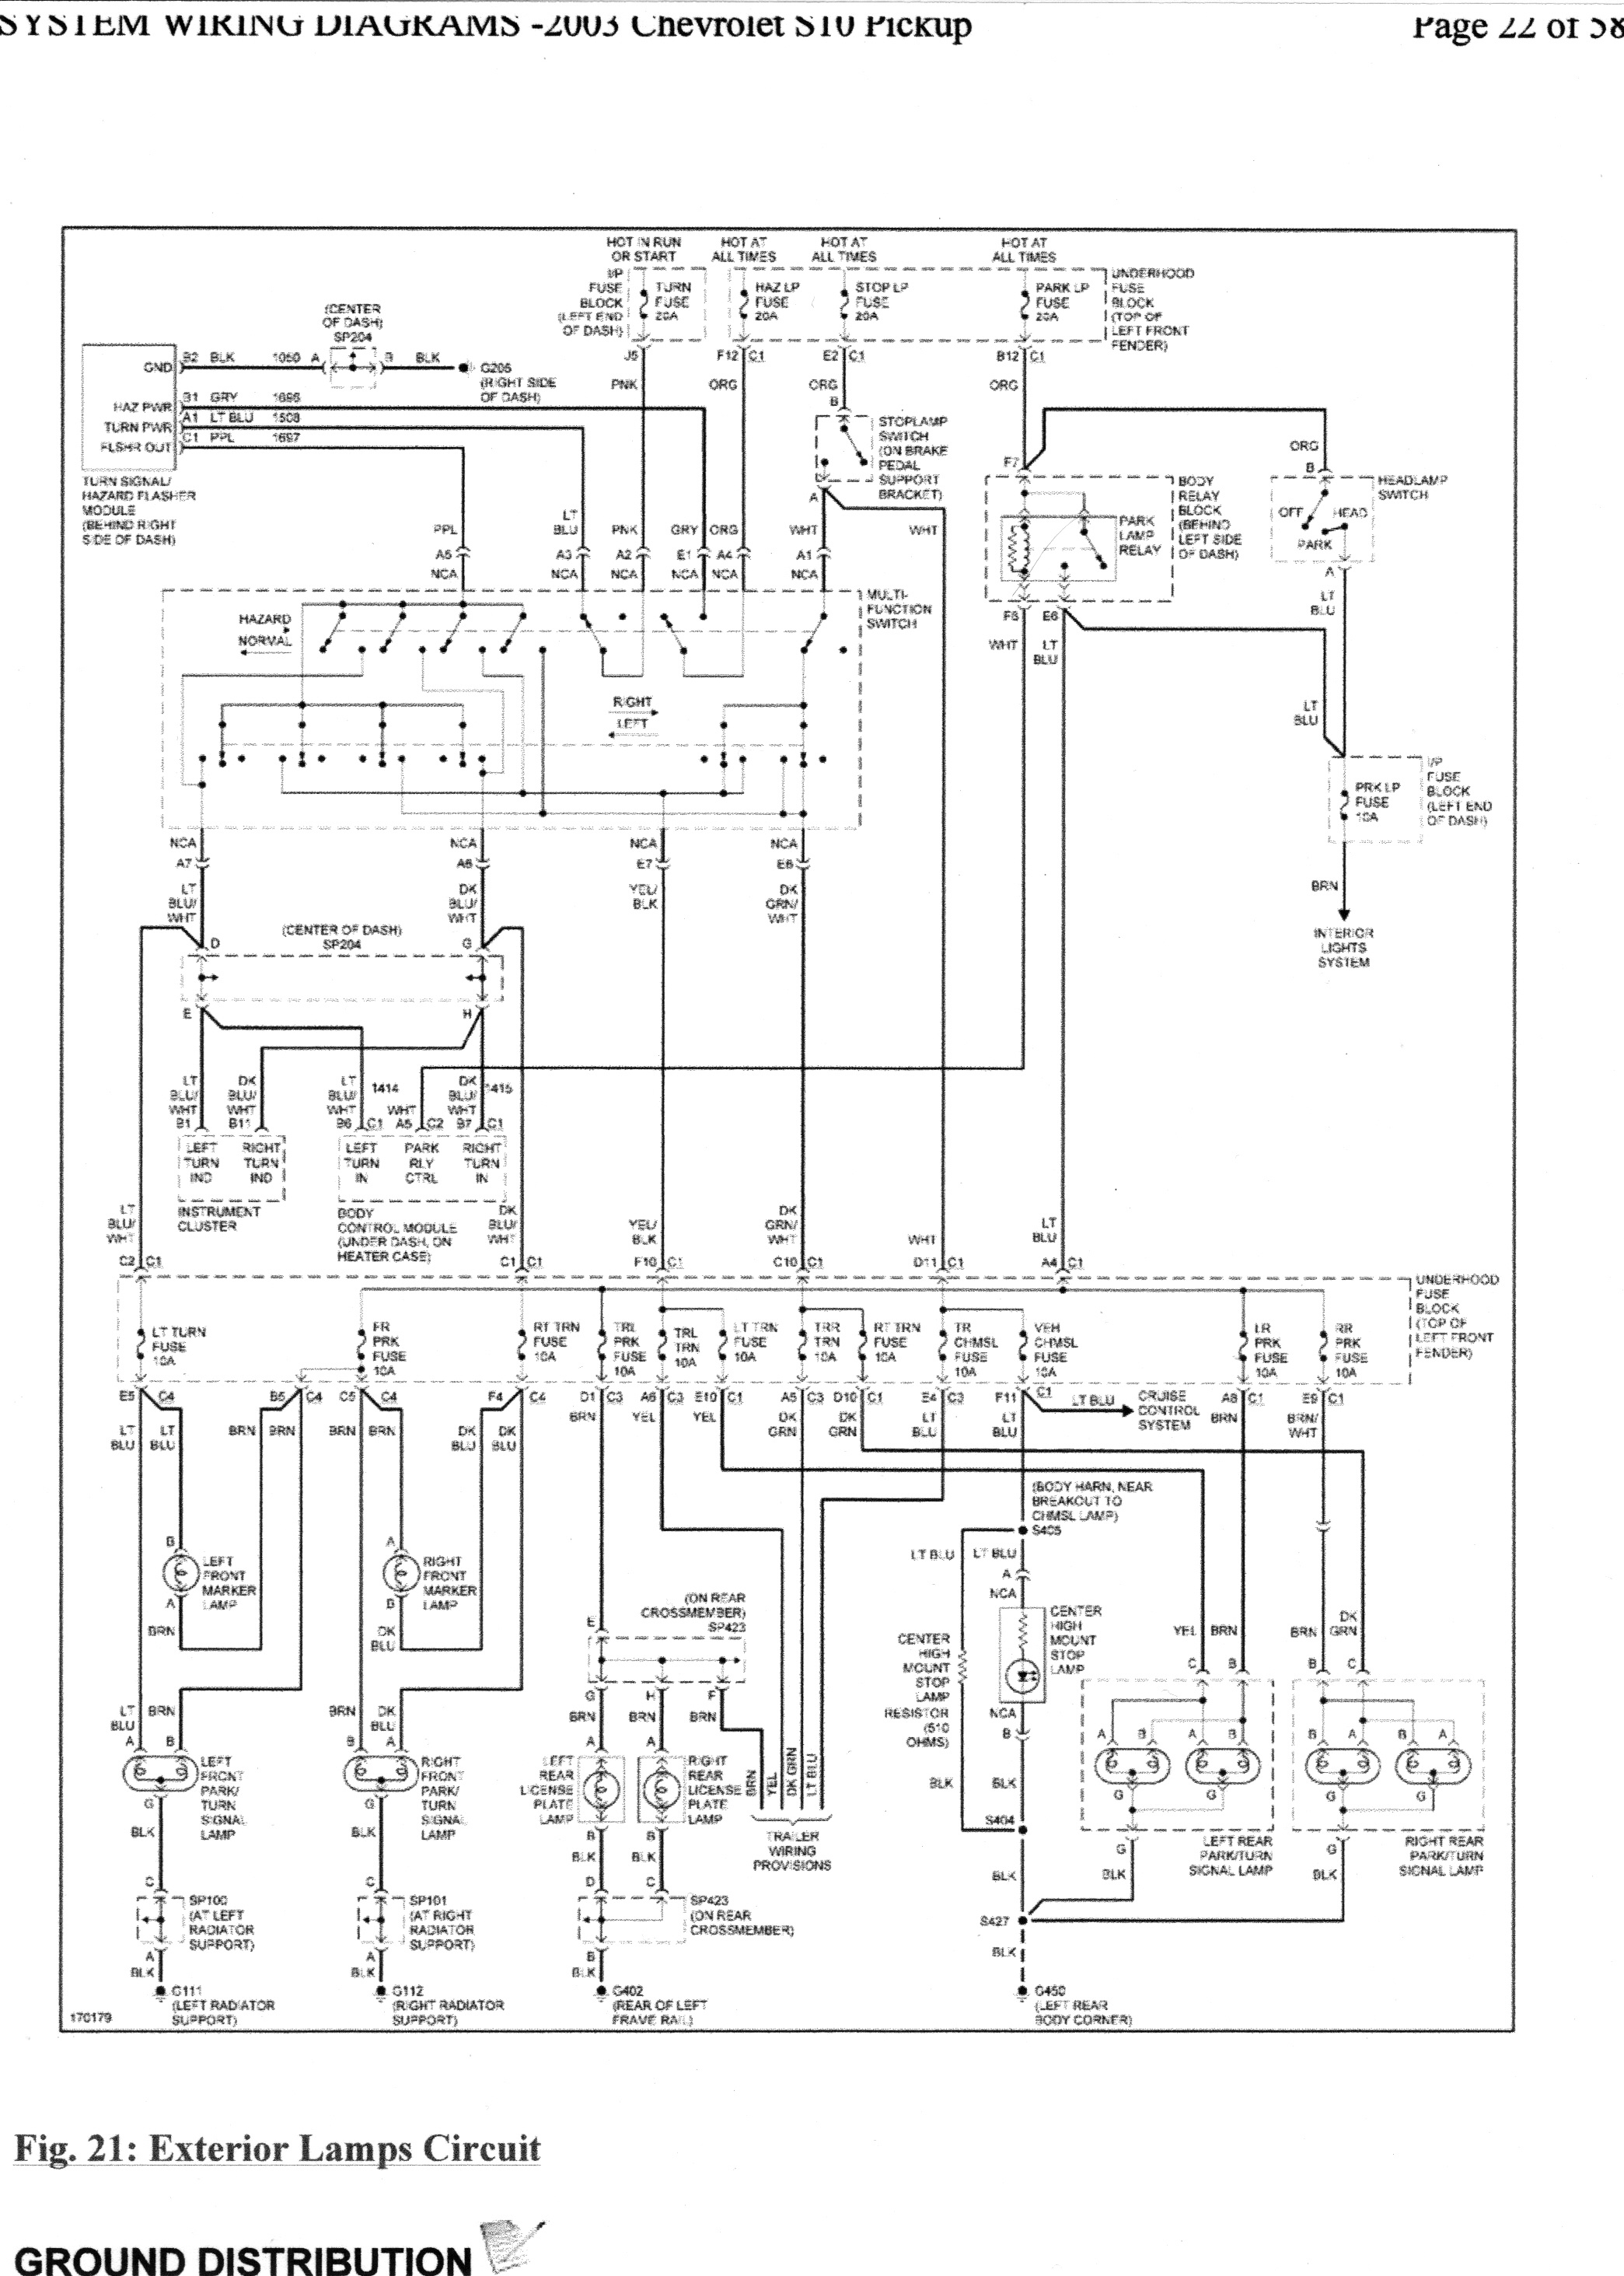 Turn Signal On Rear Driver Side Not Working Wiring Diagram